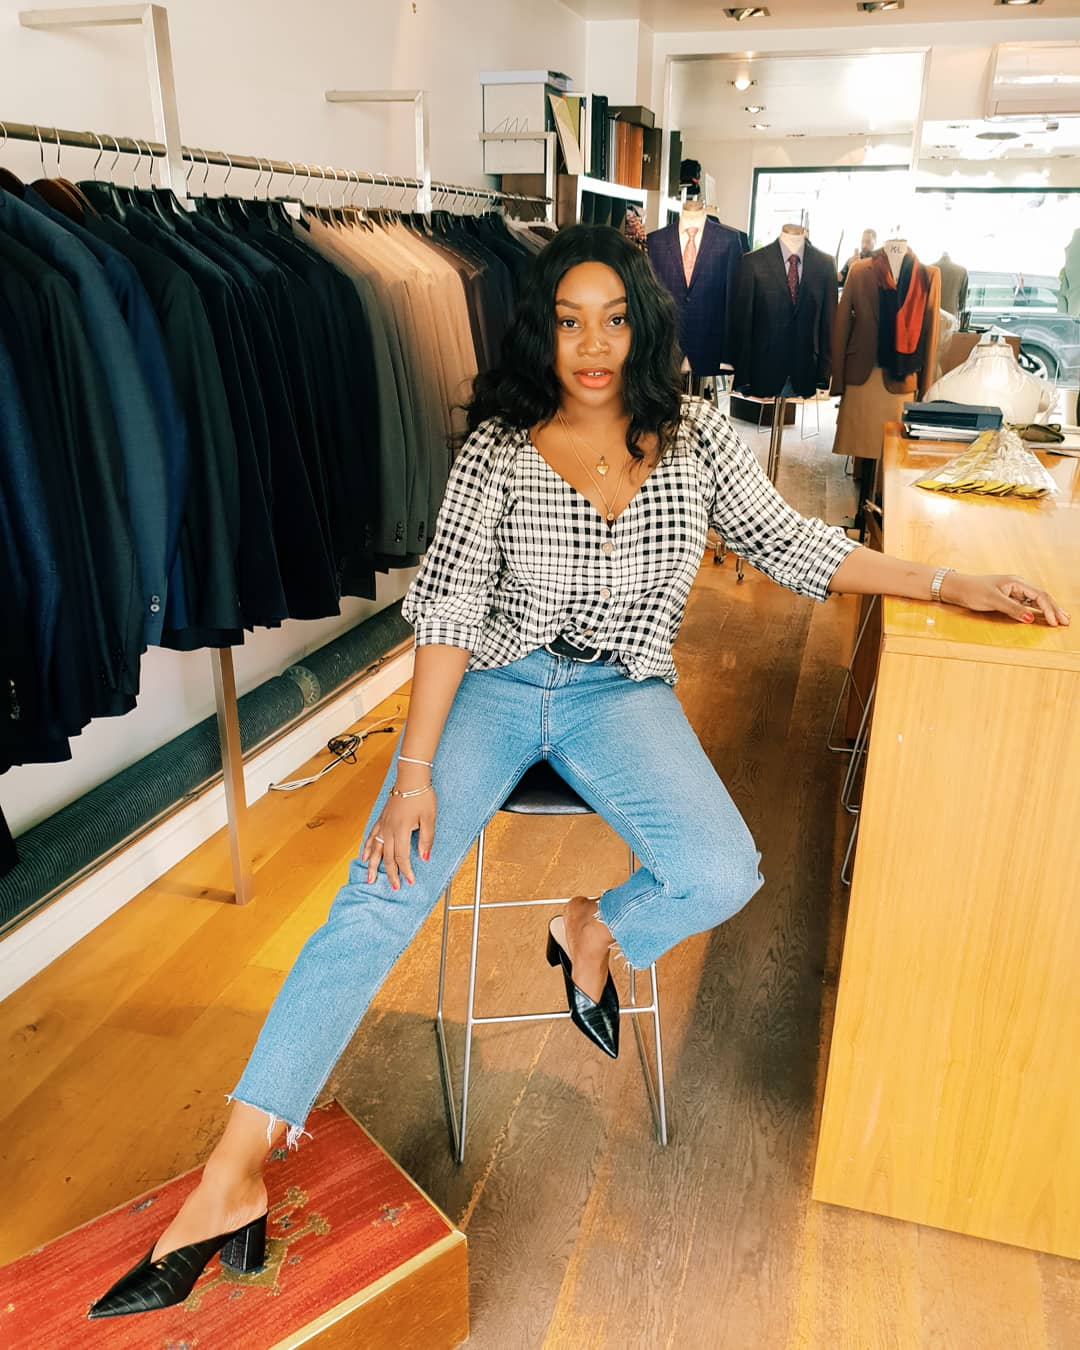 Mum a Porter Style Round-Up Ayesha Amato jeans and Zara mules with Ganni inspired top